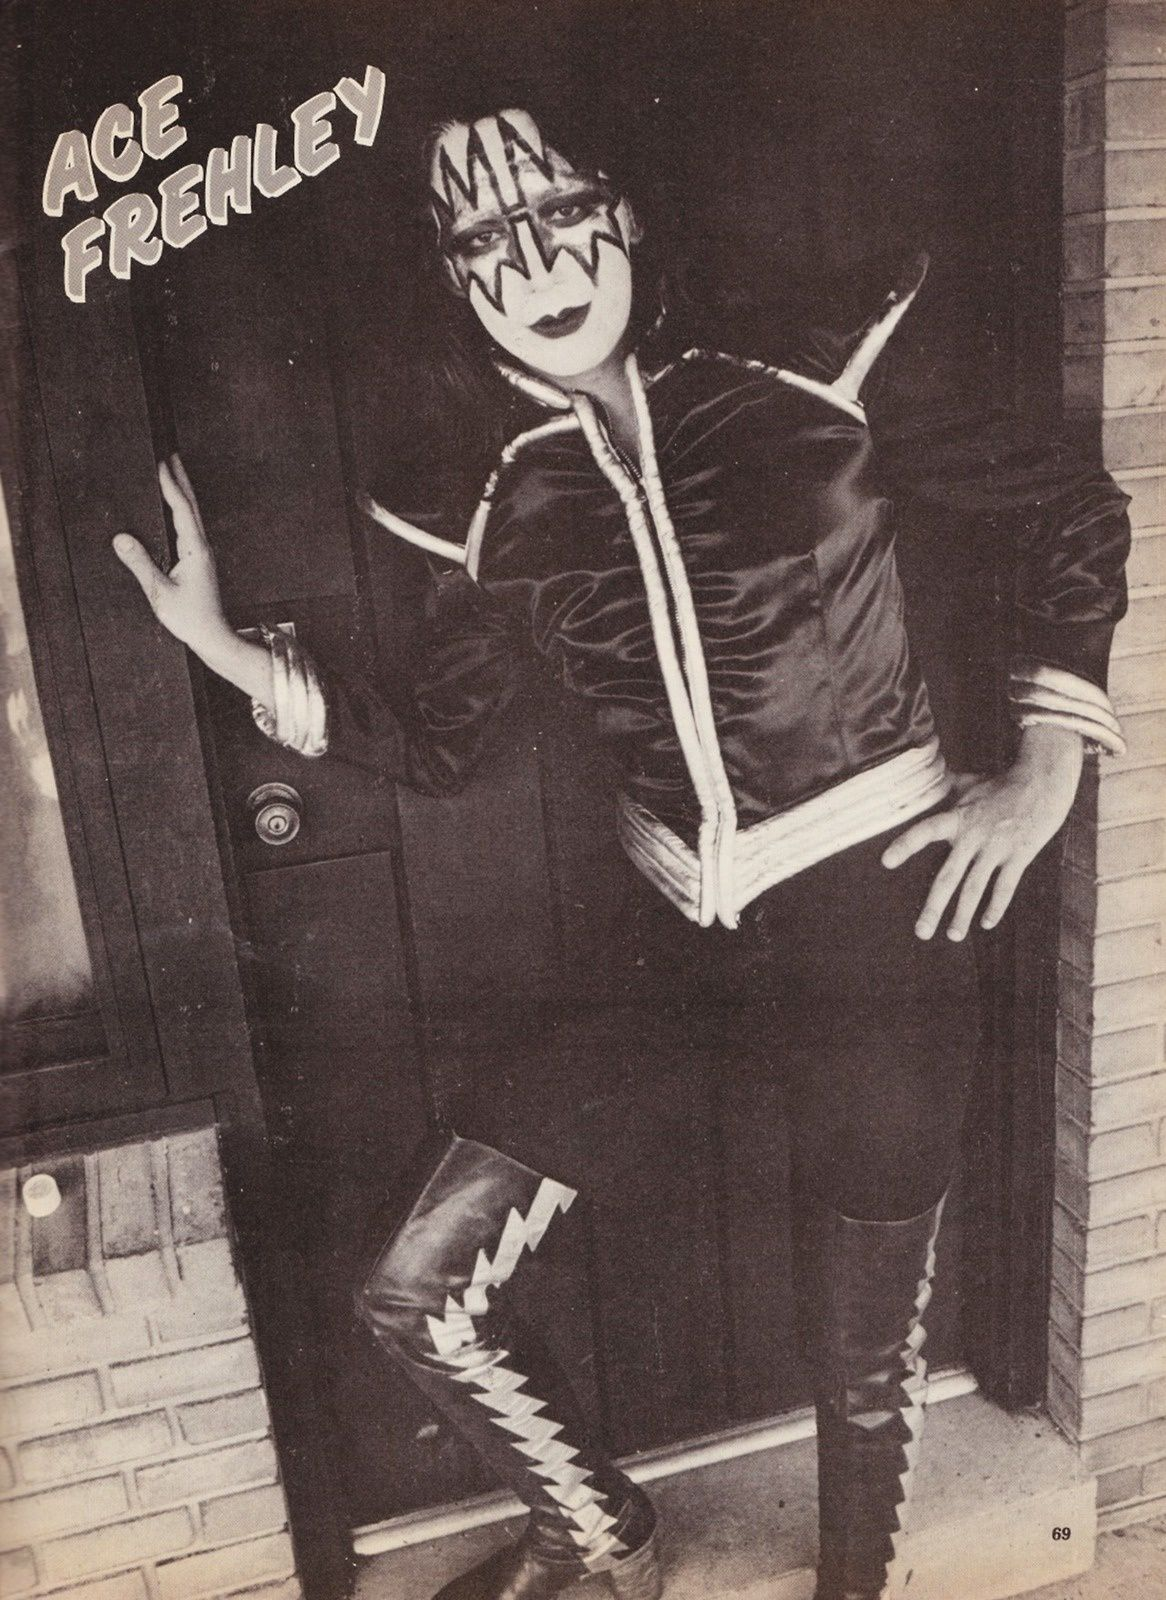 Ace Frehley - October 9th, 1975 - Shows Off His Sweet Attire